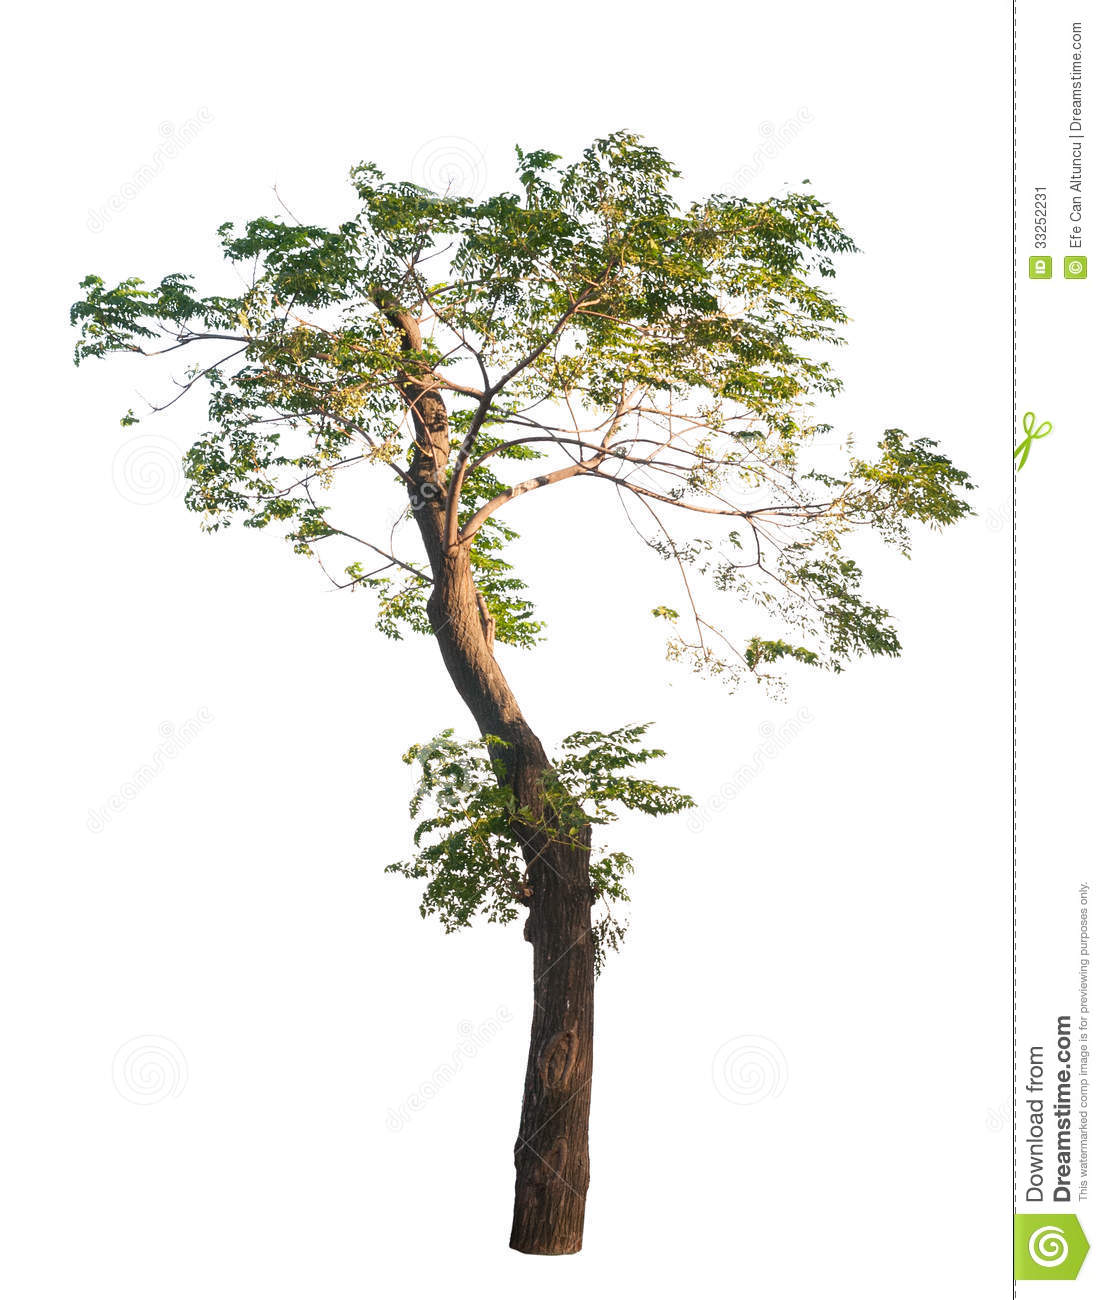 African Tree stock image. Image of leafy, decoration.